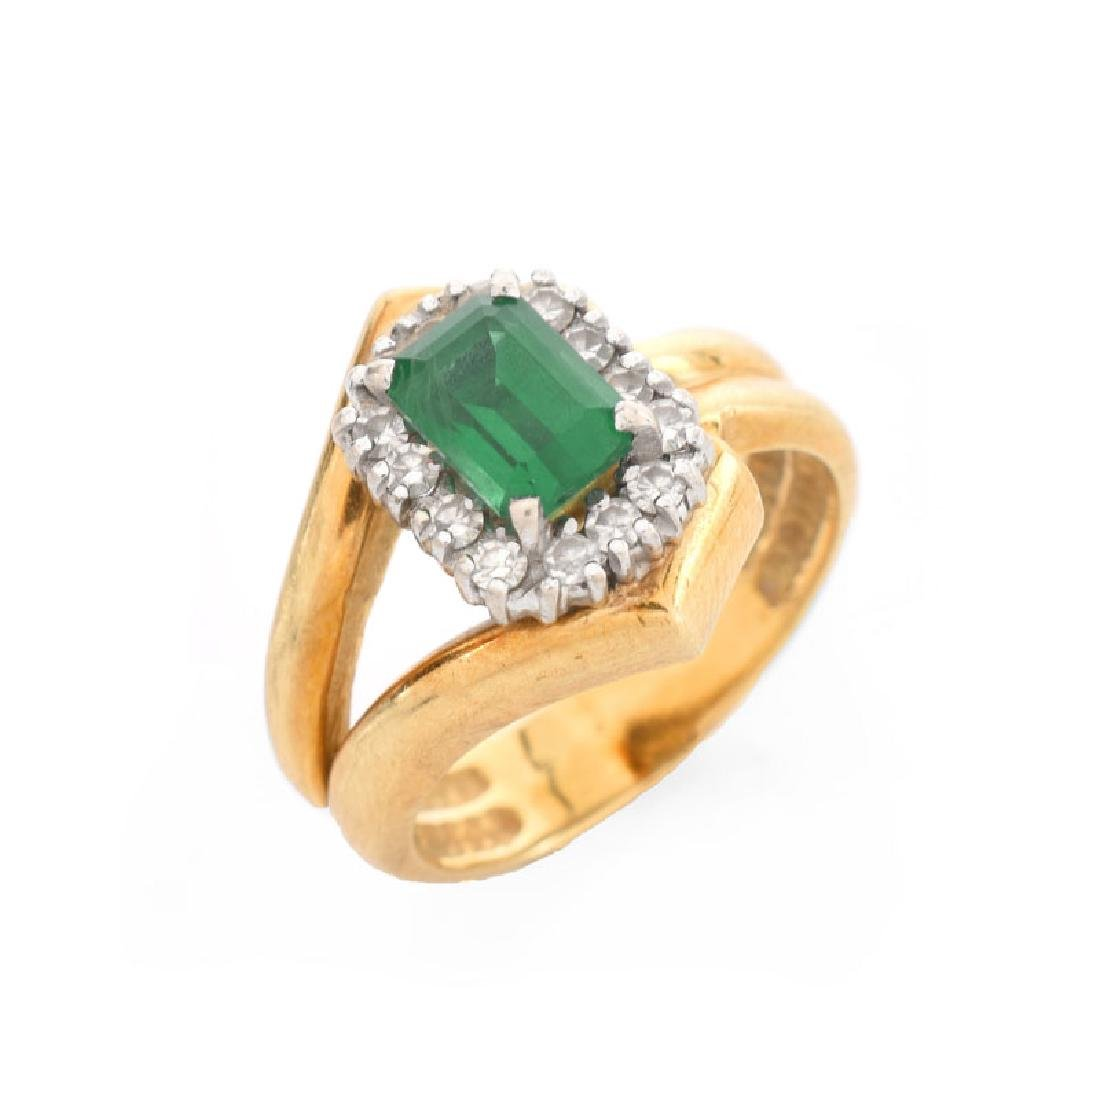 Vintage Emerald, Diamond and 14 Karat Yellow Gold Ring.